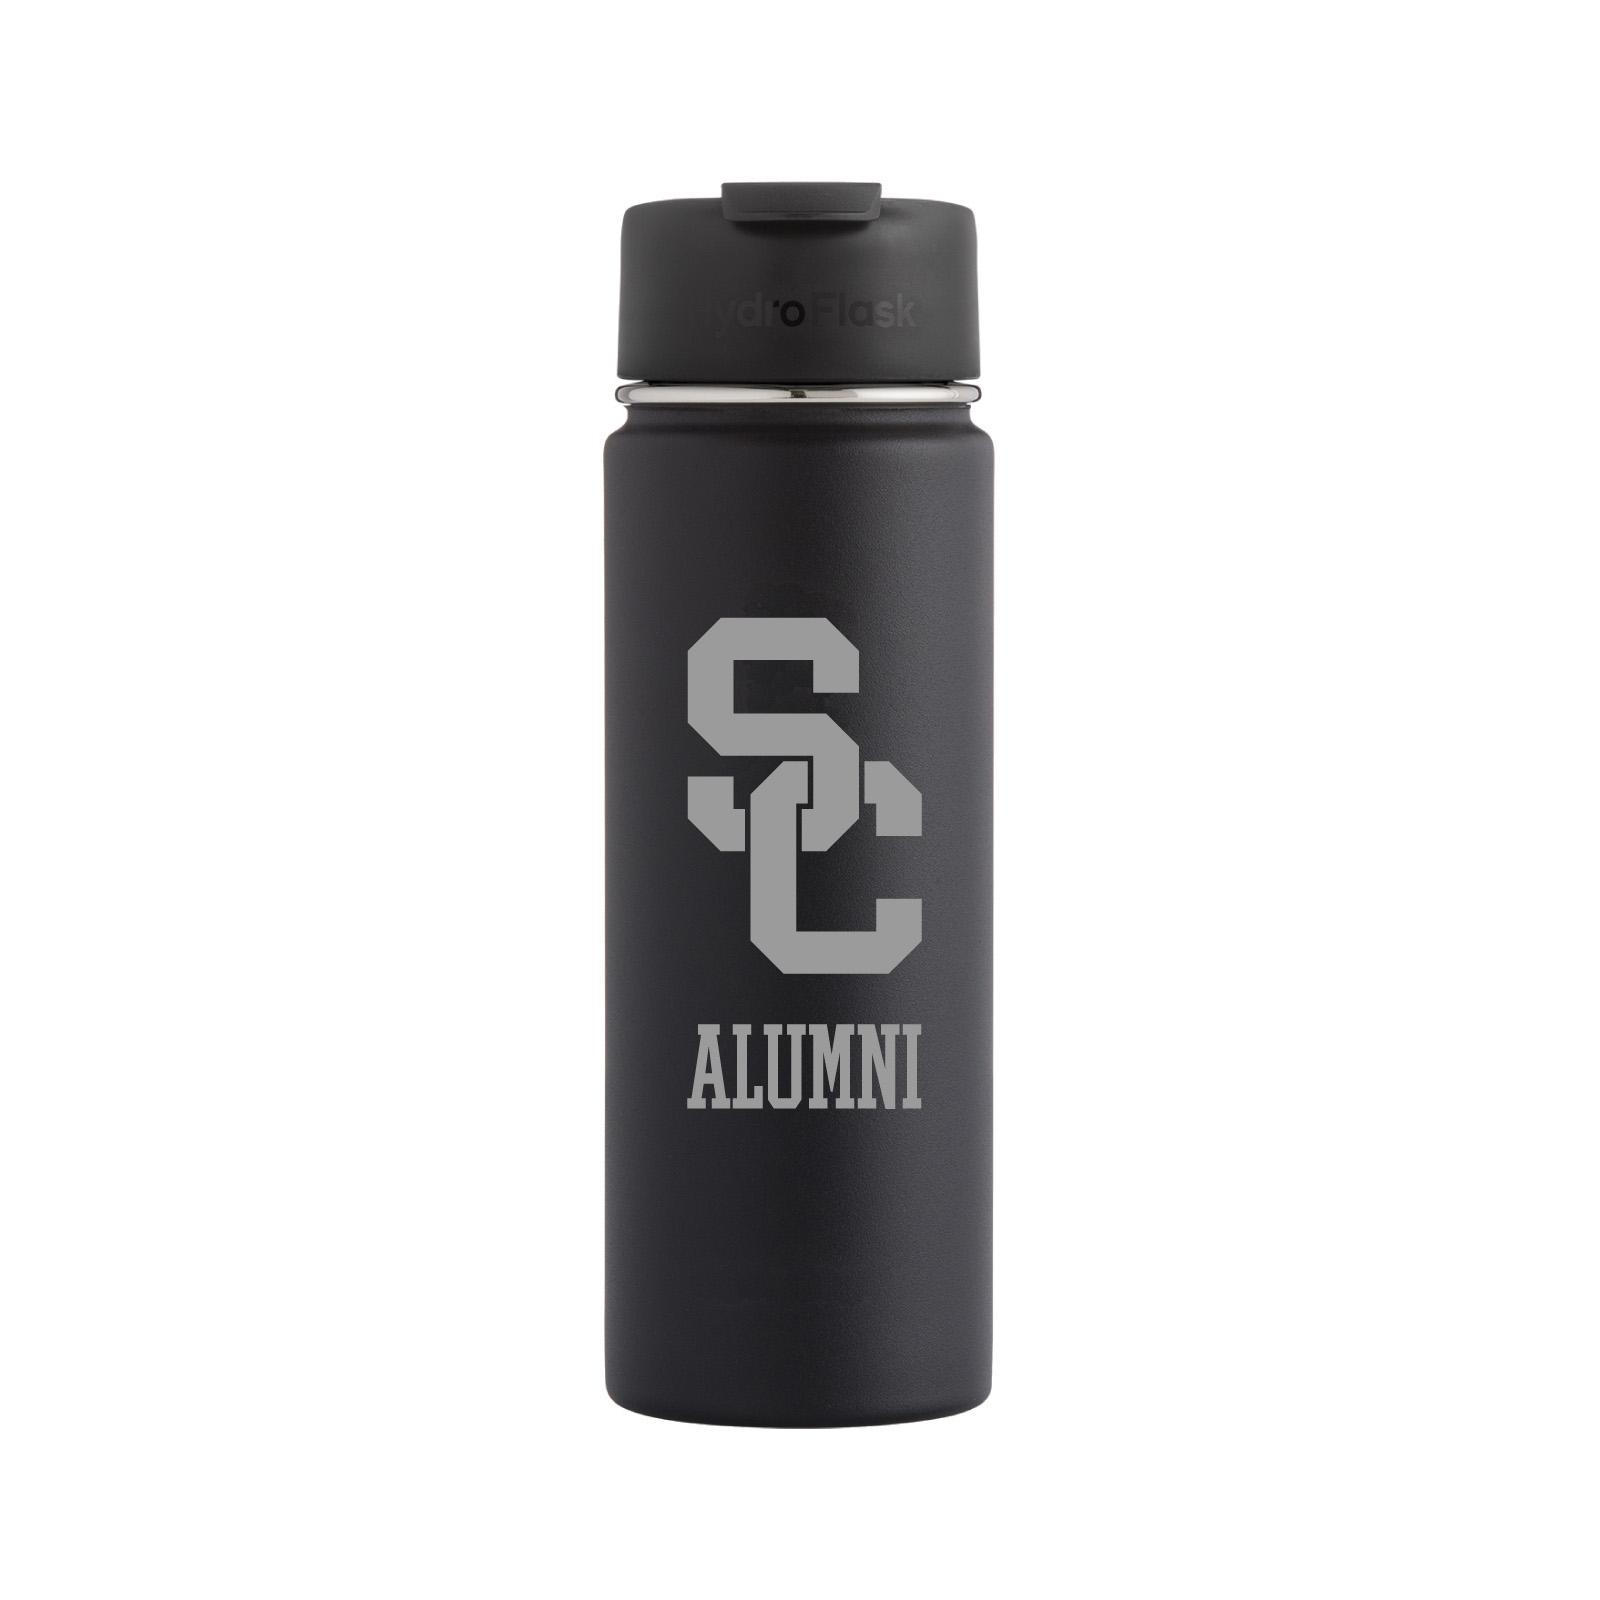 USC SC Interlock Engraved Alumni Hydro Flask 20oz Tumbler